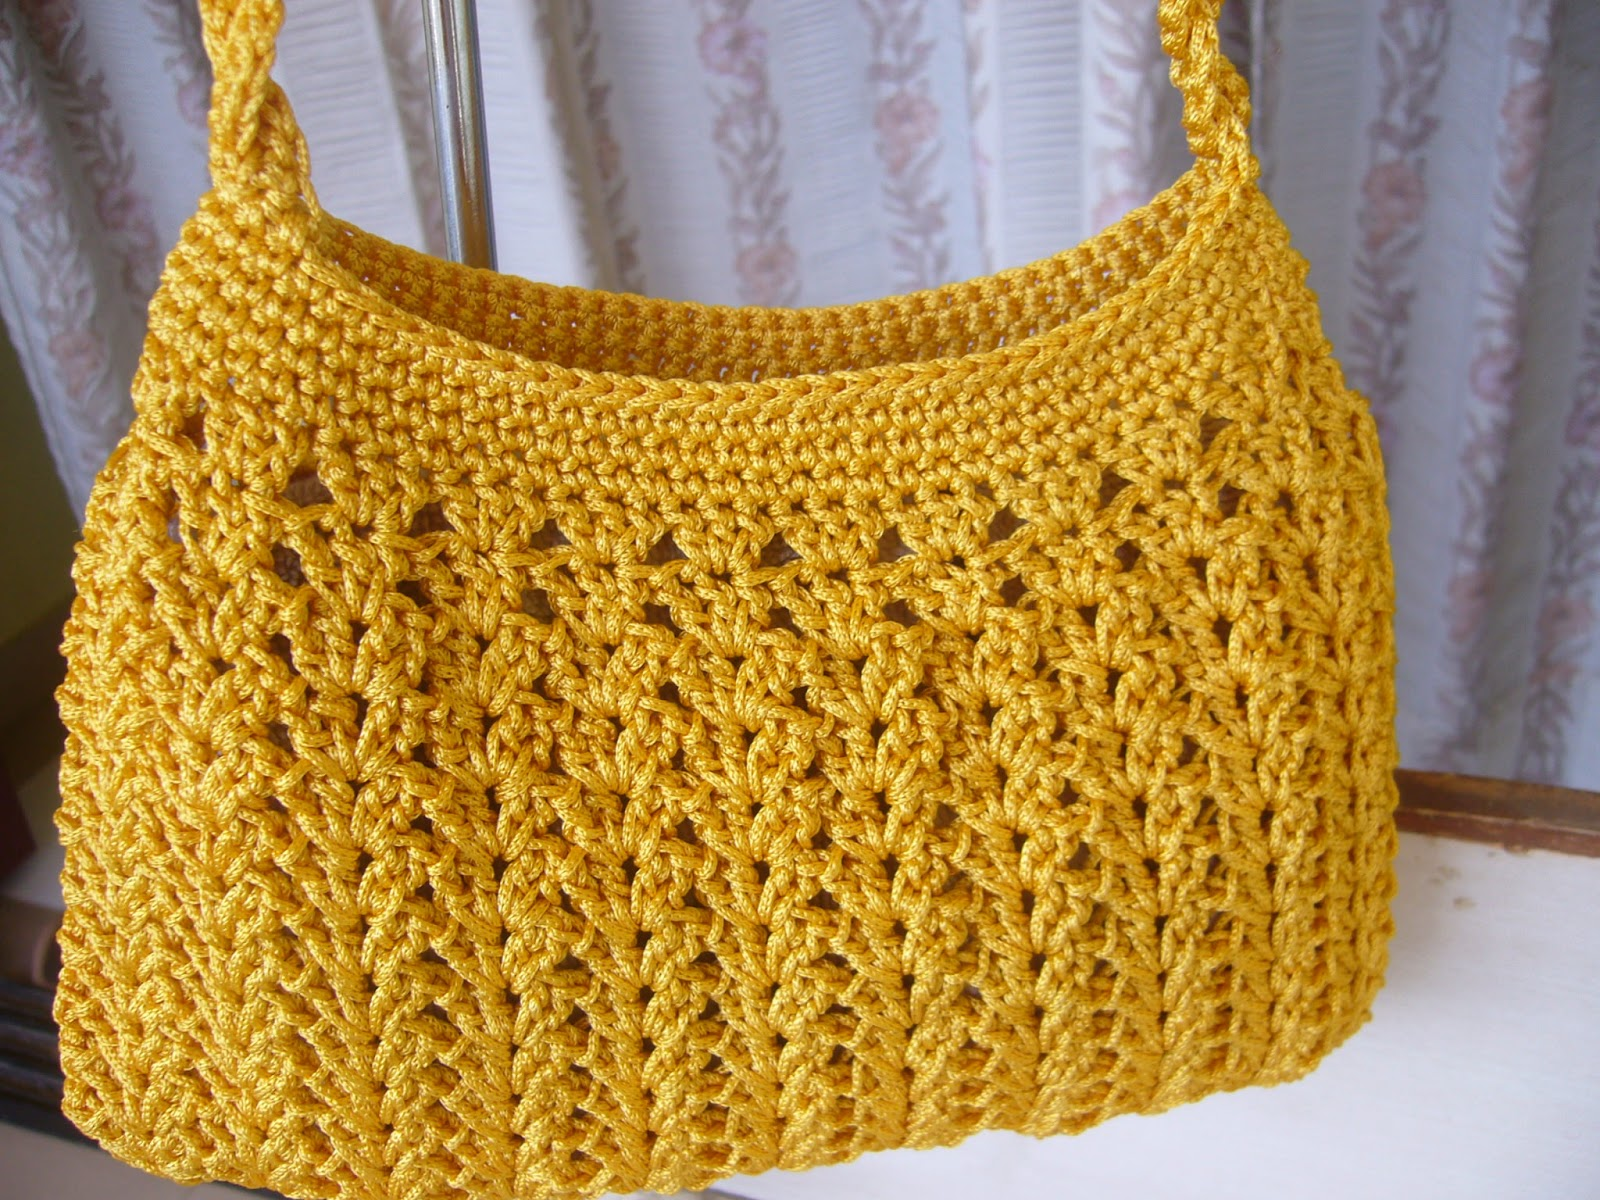 Crochet Purse : Crochetkari: Golden yellow crochet purse